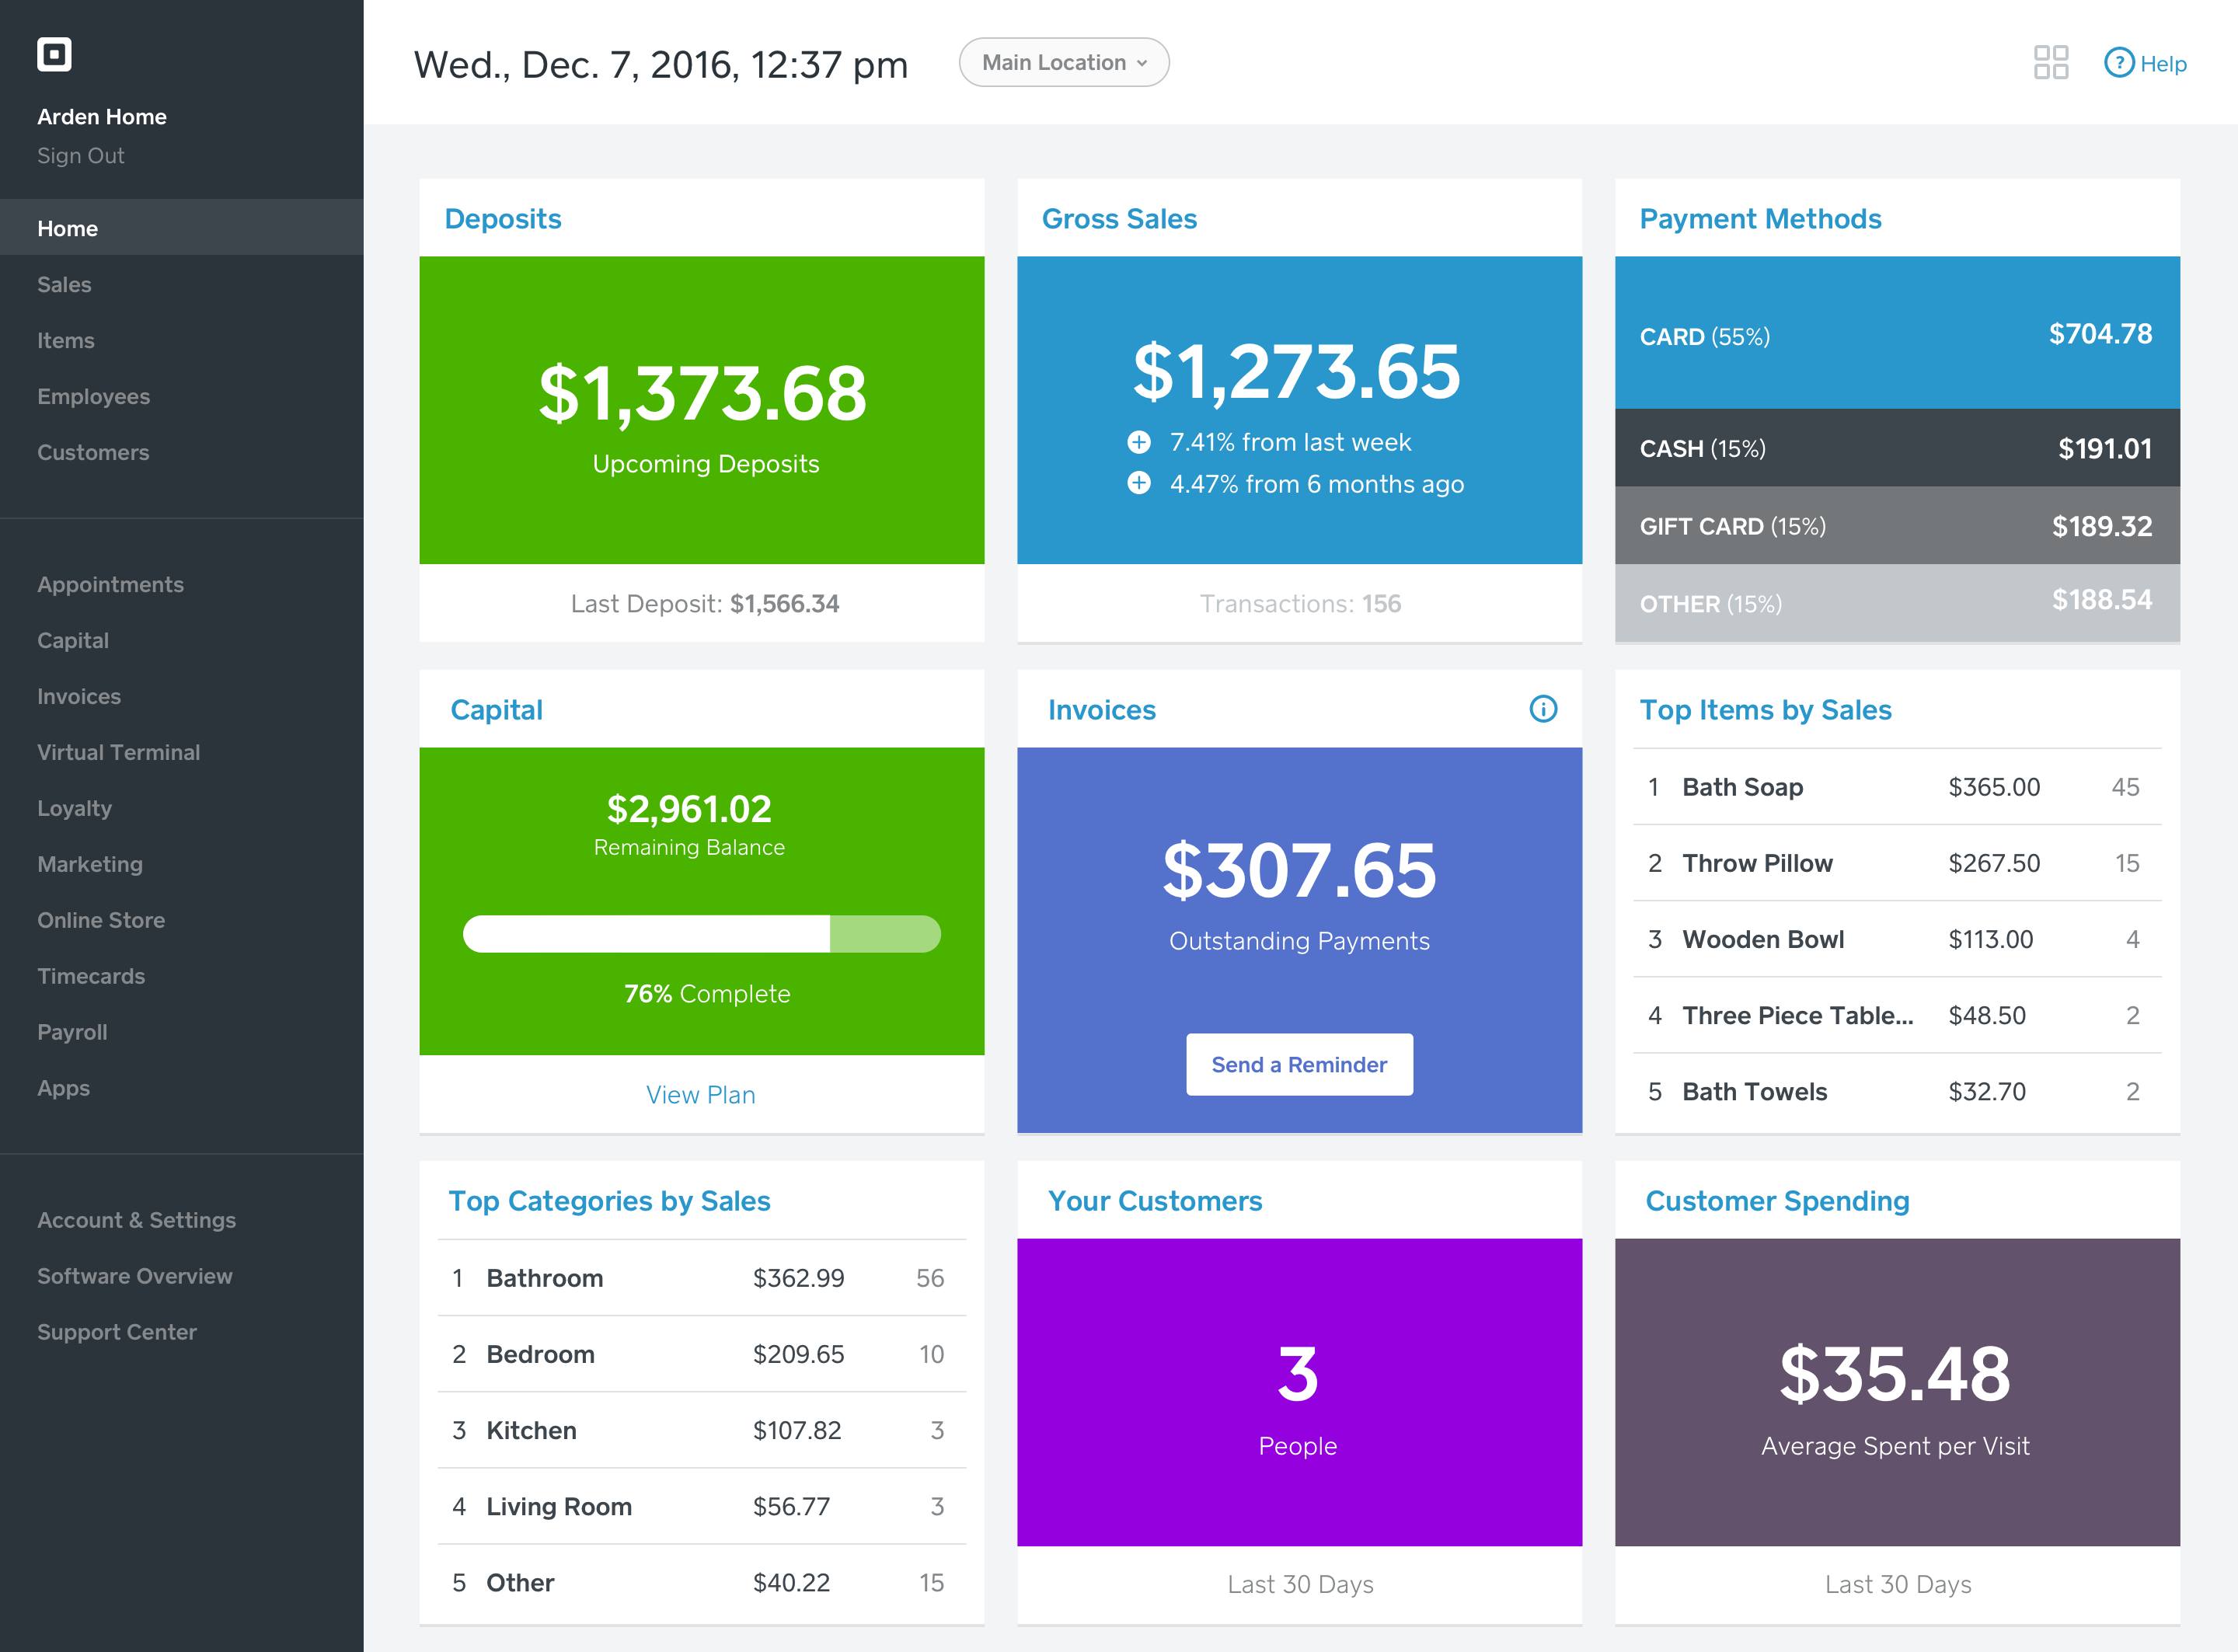 Image: A screenshot of the Square Seller Dashboard